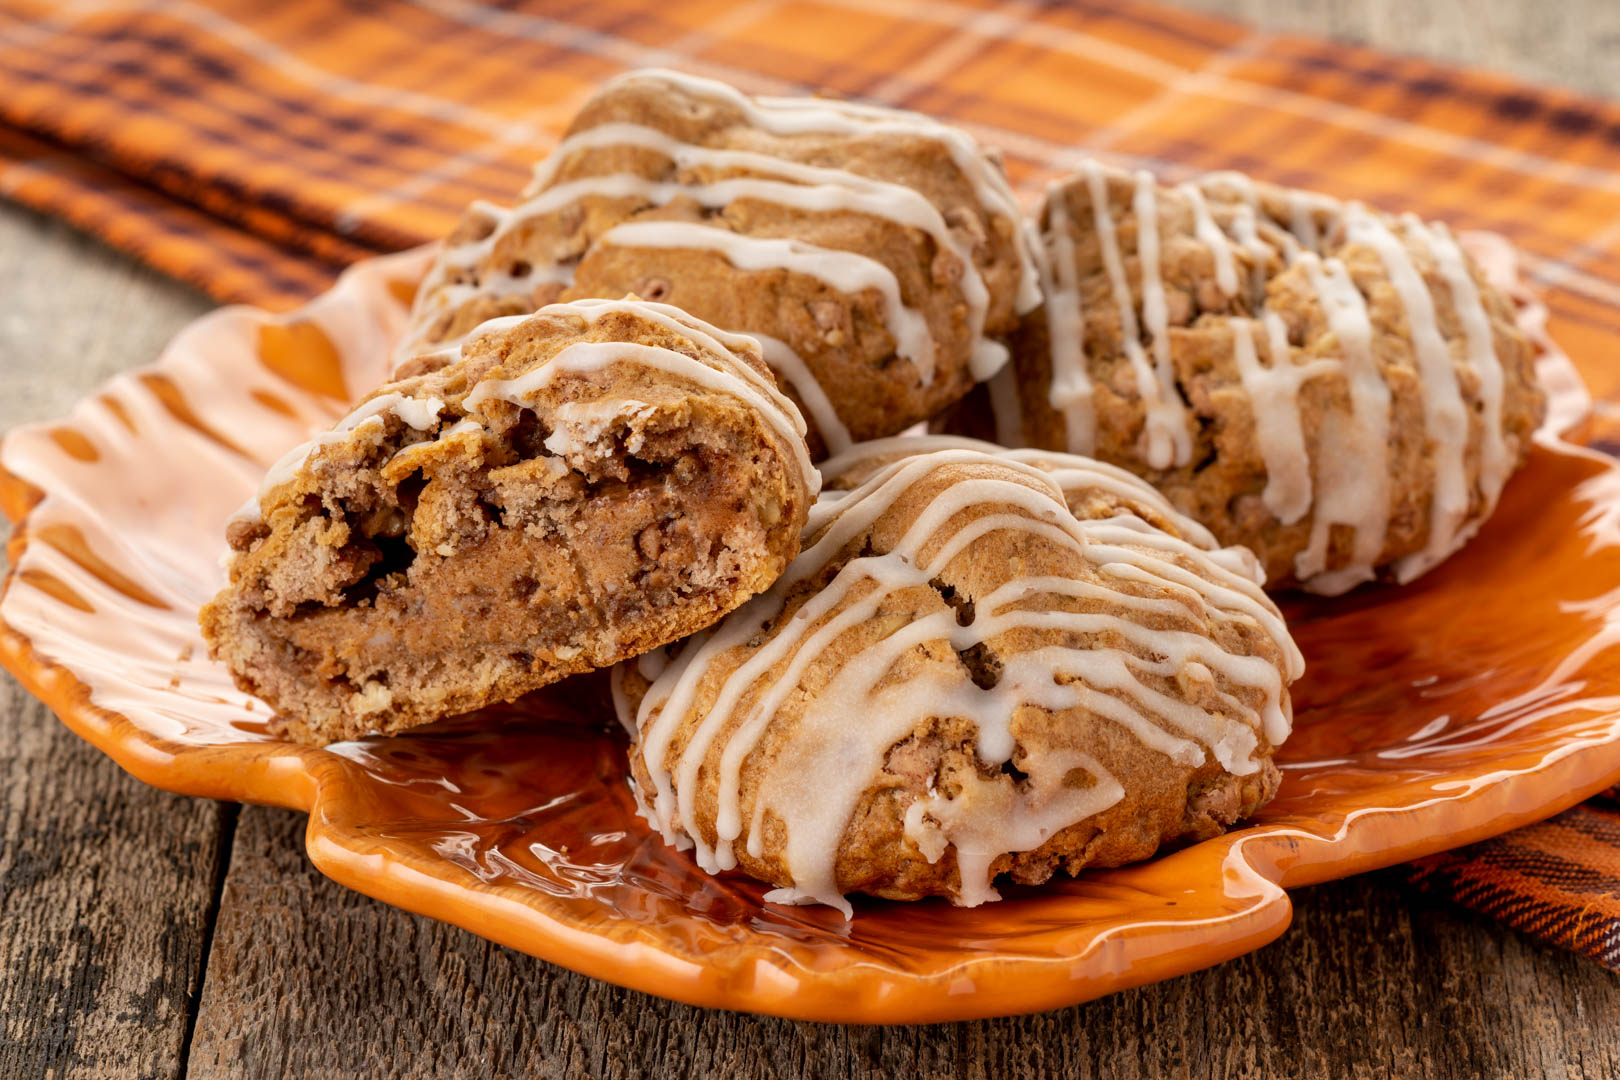 Cinnamon Toga - Cinnamon Pastries have never tasted so good. This scrumptious, cream and cinnamon sugar filled pastry drizzled with oh-so-yummy glaze, is bursting with deliciousness.